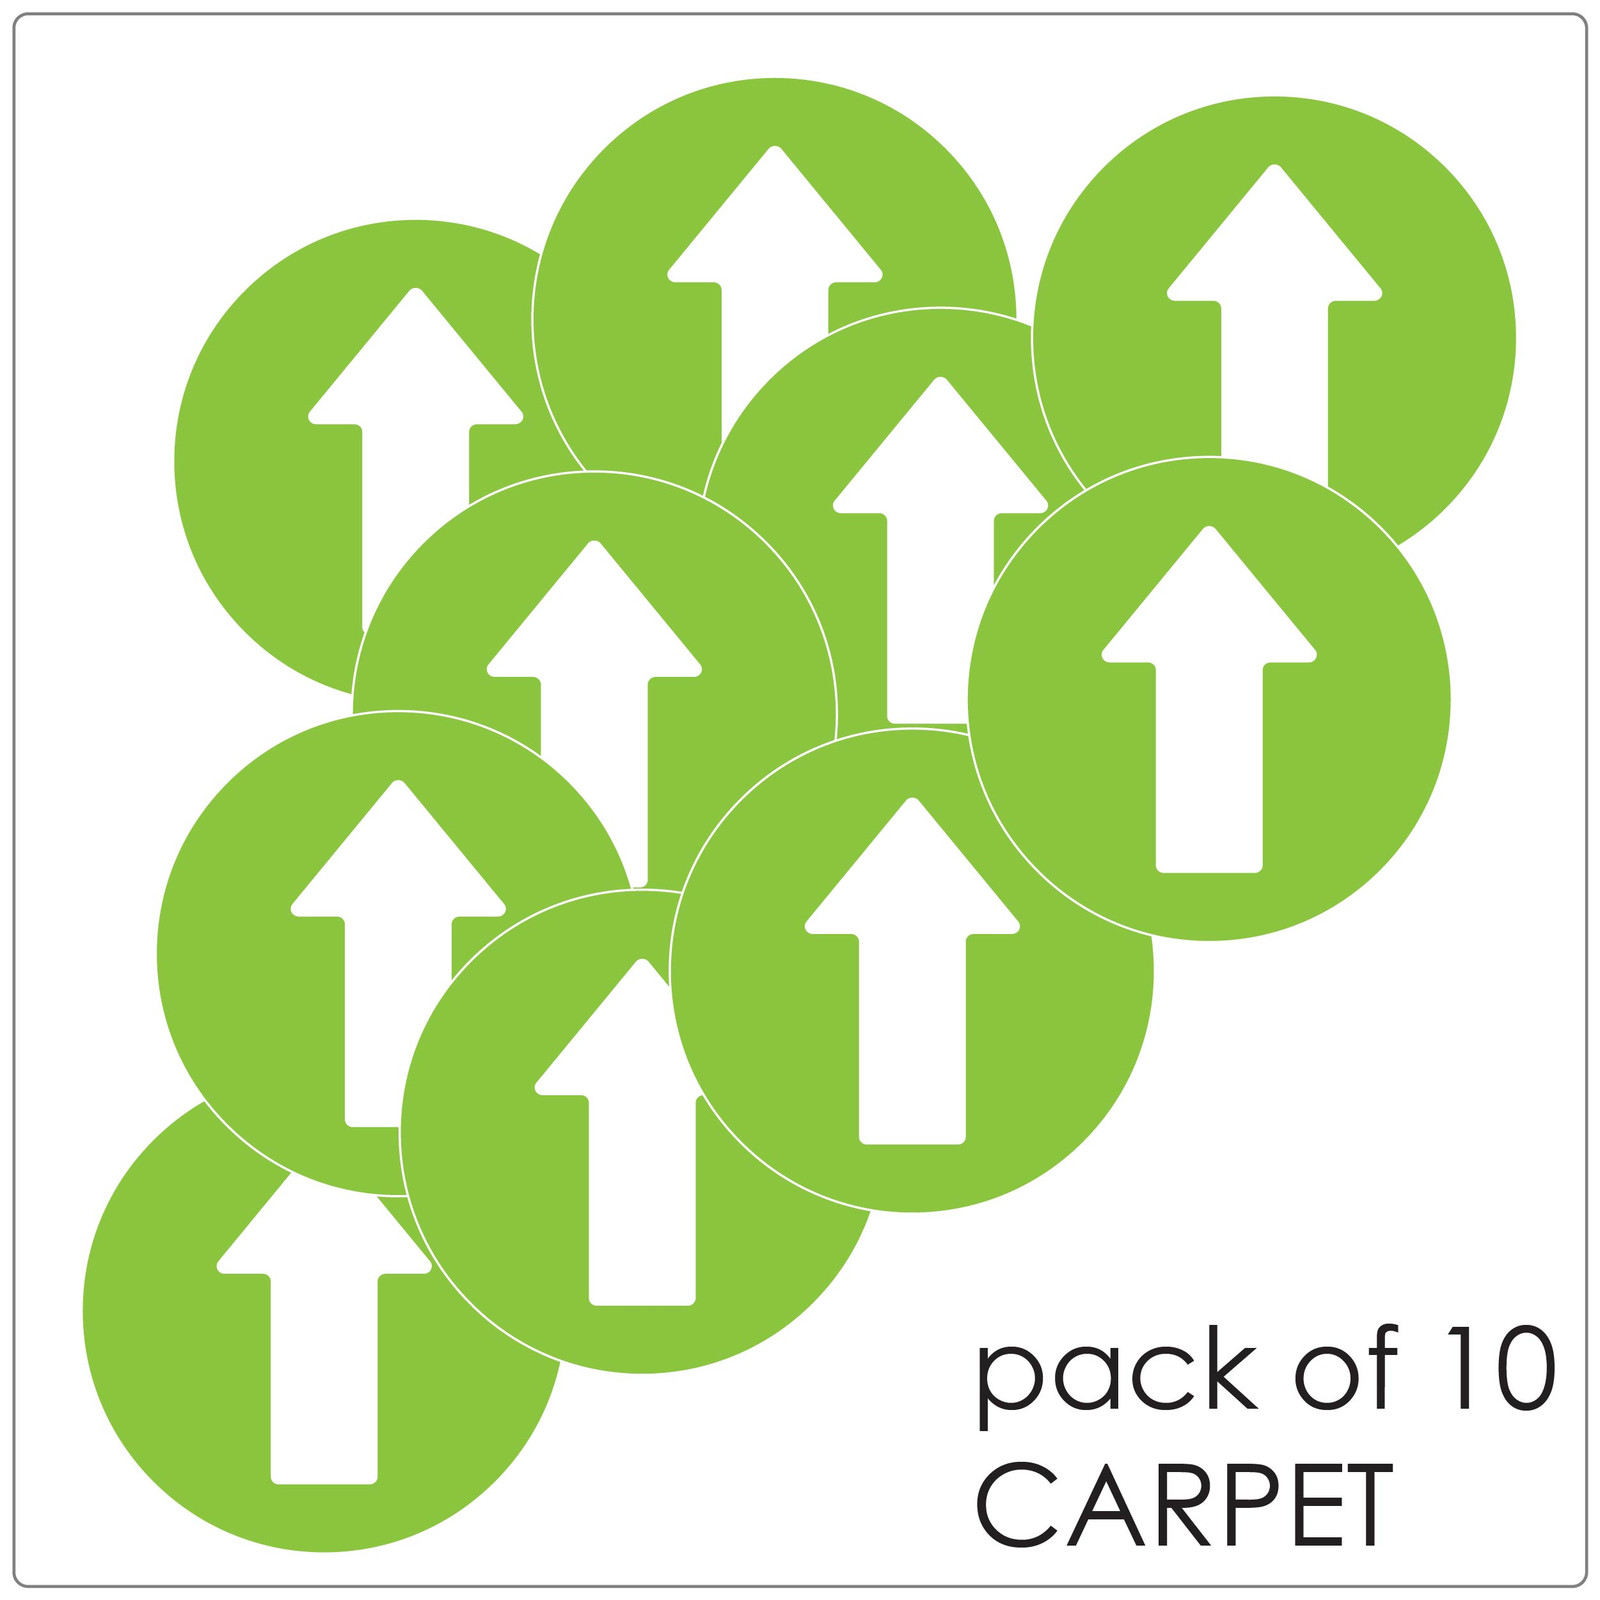 directional arrow social distancing floor sticker for carpet, pack of 10 Self-adhesive Corona virus floor sticker to help social distancing.